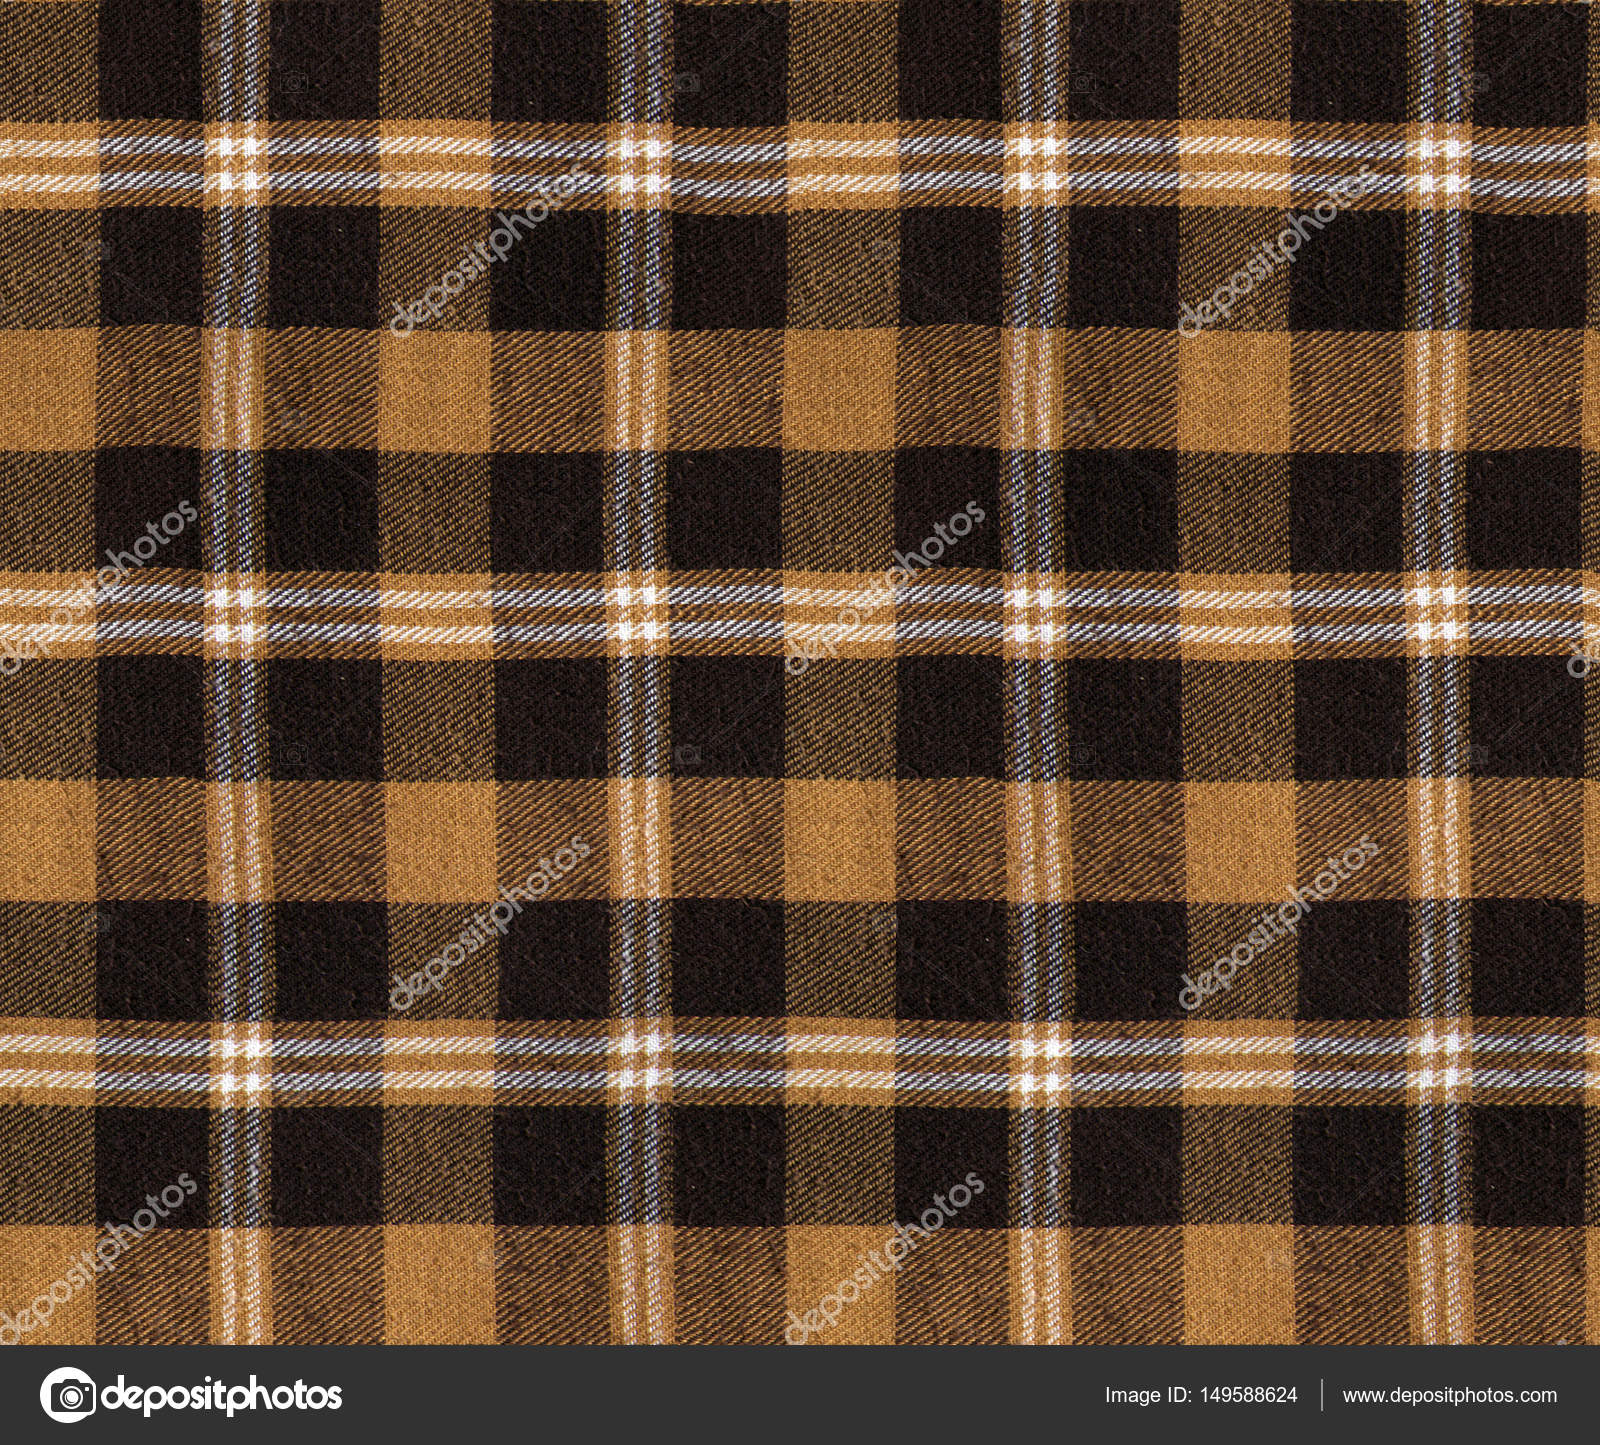 Fabric Plaid Texture. Cloth Background. Plaid Seamless Pattern / Checkered  Table Cloth Background. Brown Color U2014 Photo By Ann_minsk